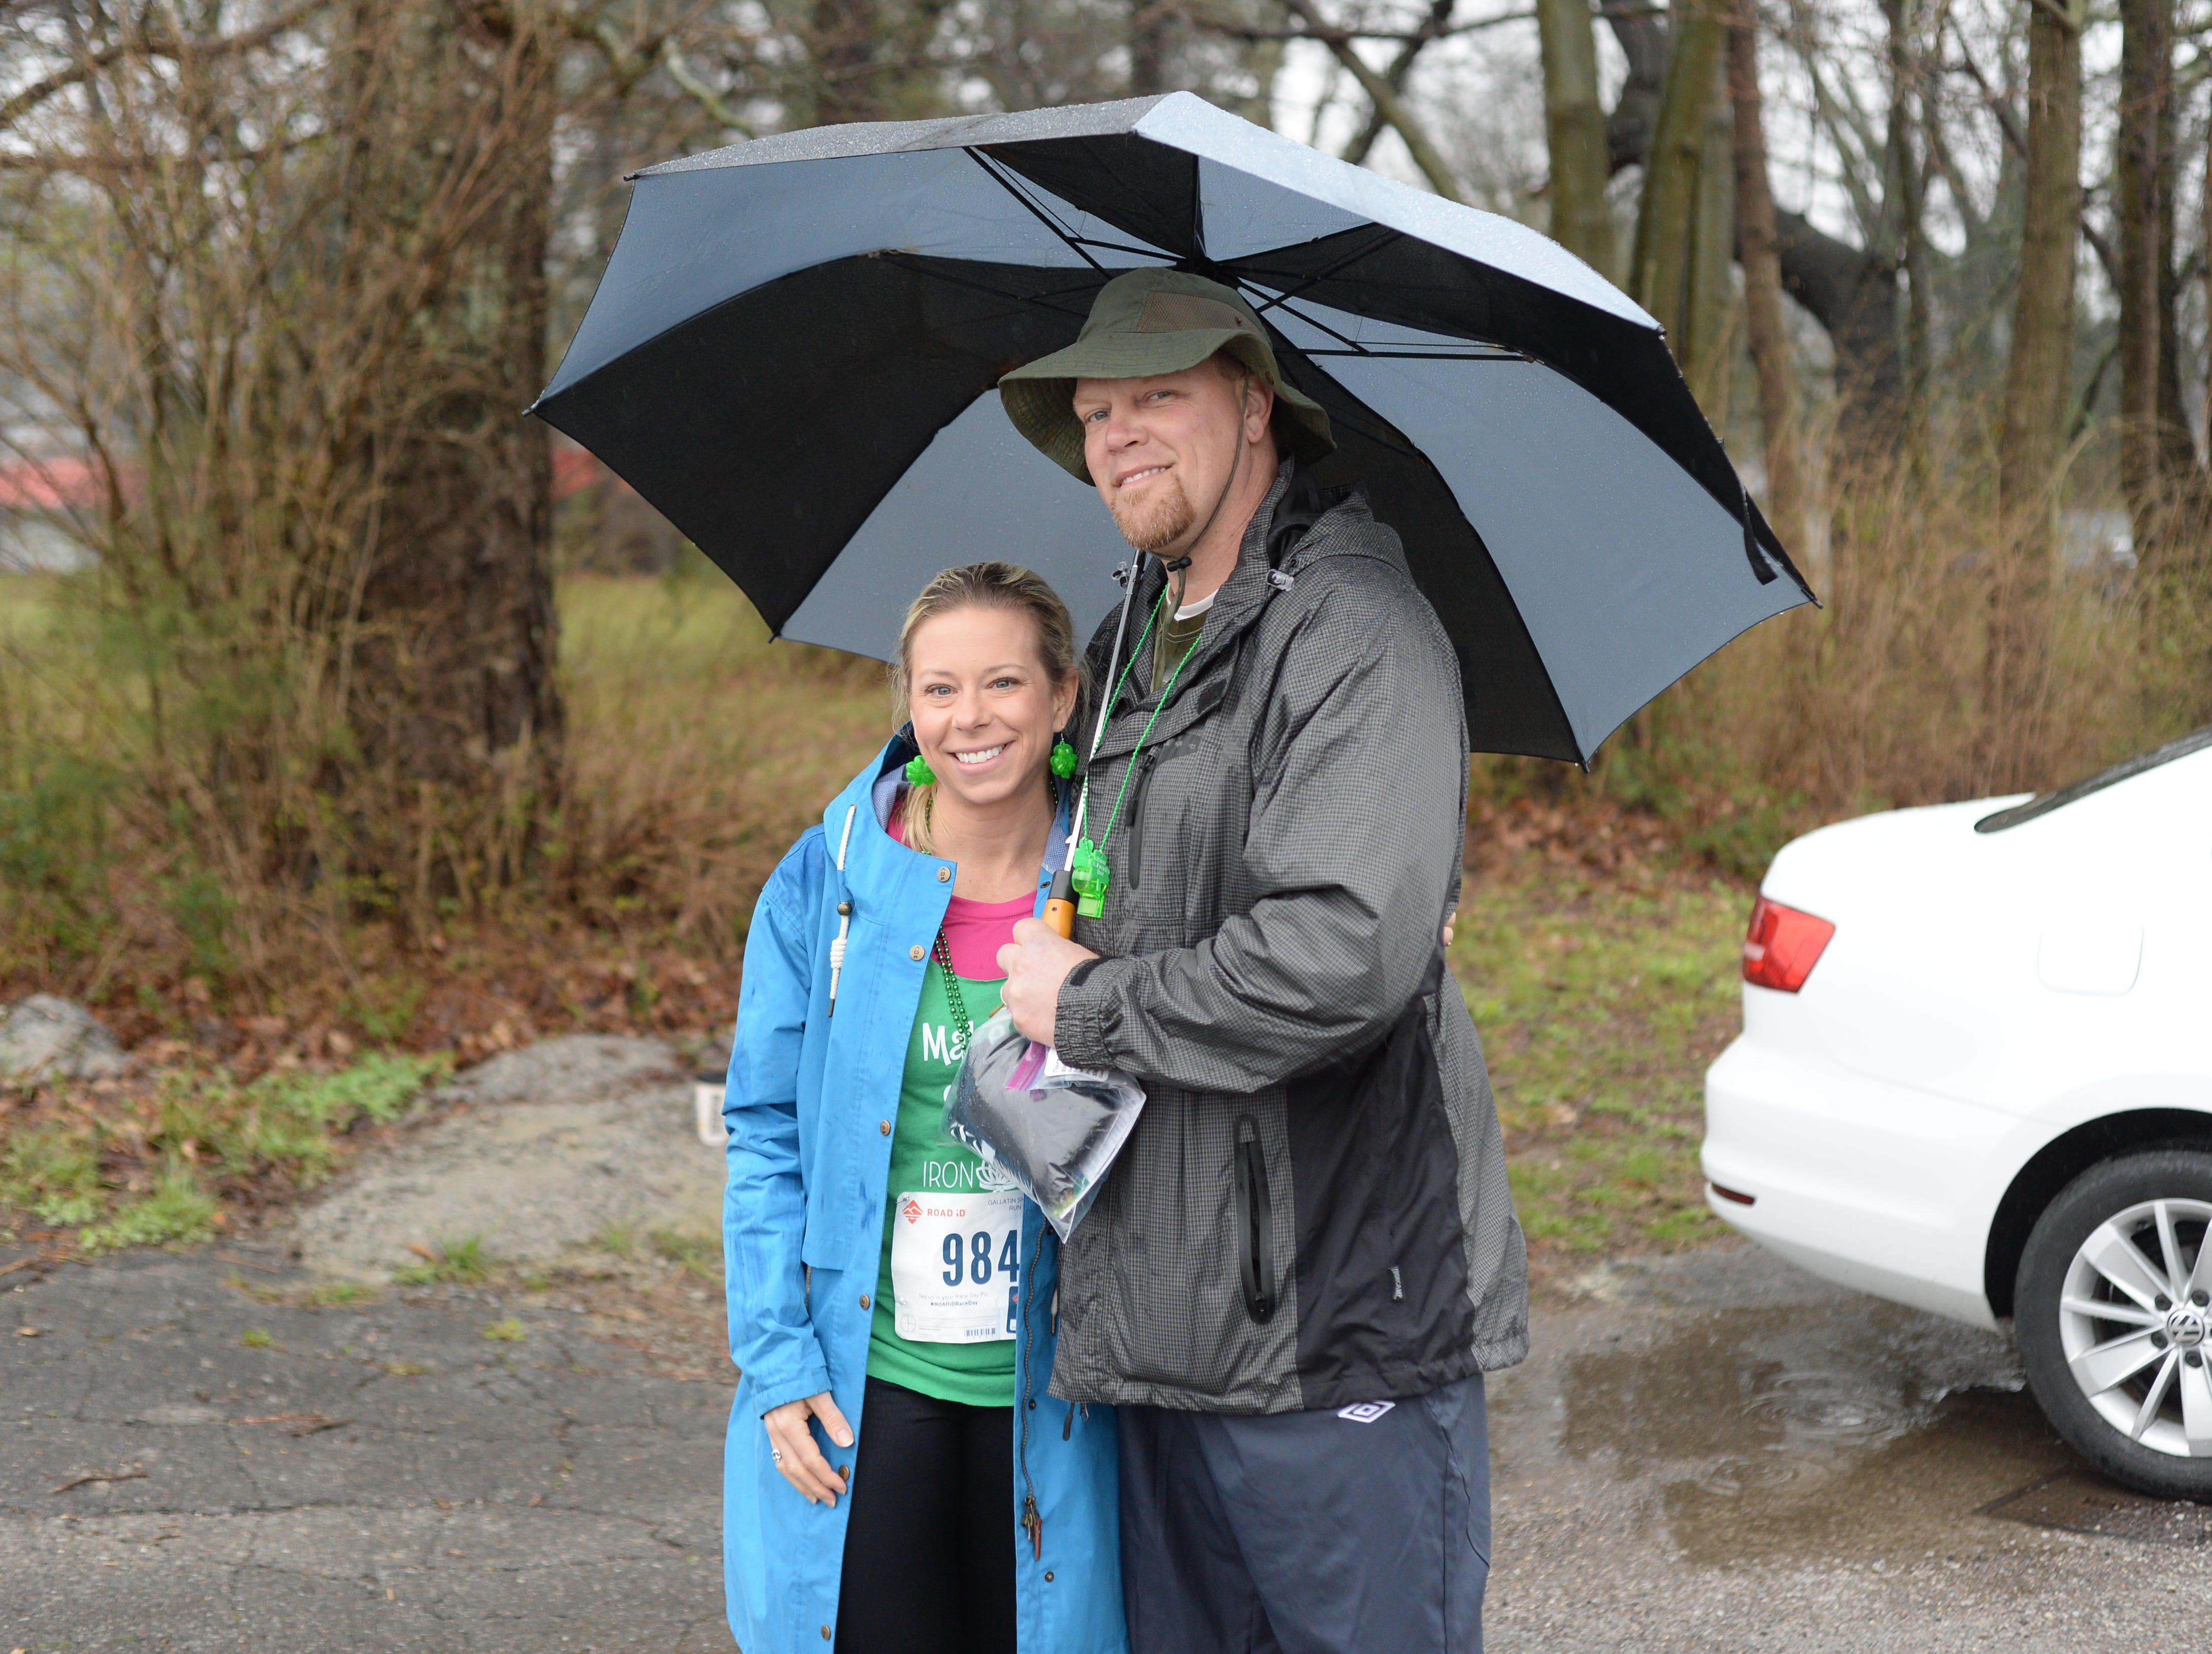 The Thurmans came out to support the Gallatin Shamrock Run on Saturday, March 9.